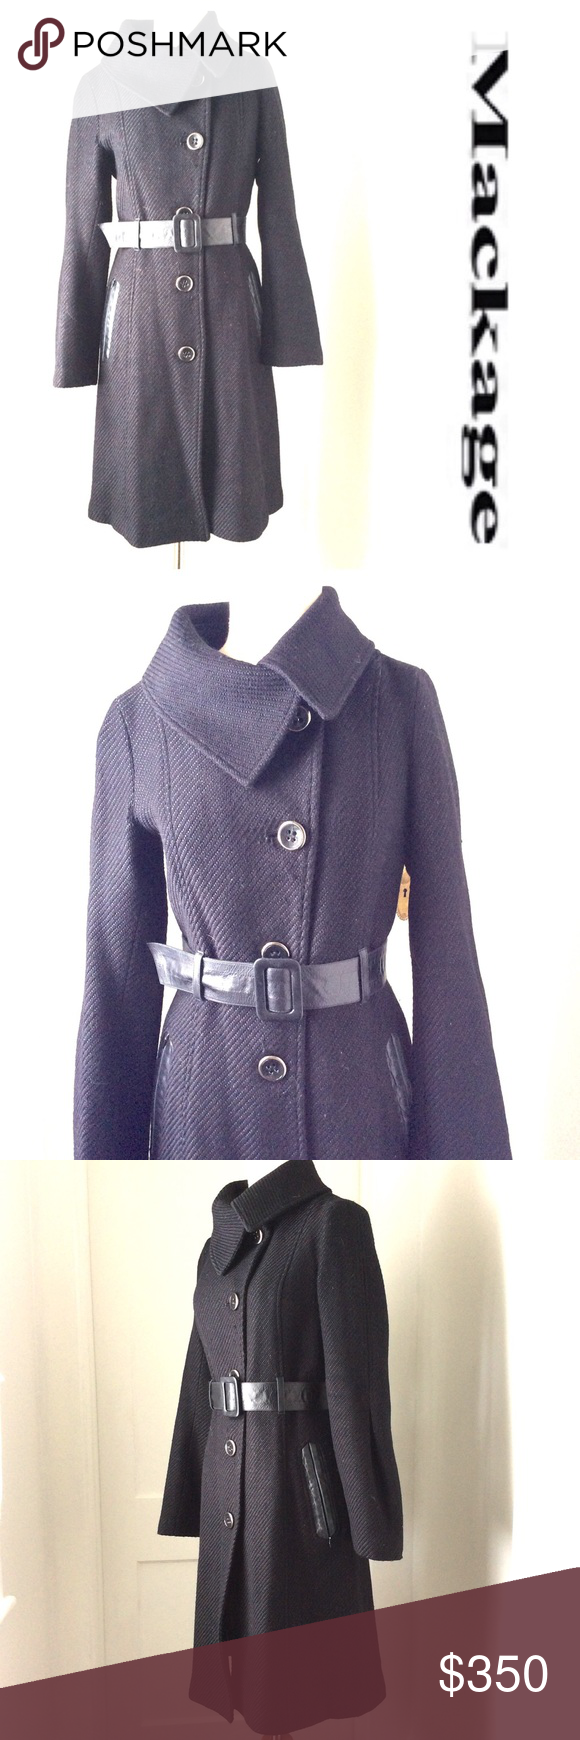 MACKAGE black leather trim COAT Small S Beautiful preowned coat by MACKAGE in Black.. light wear, some minor pilling, small fraying under arm, GreatCoat that retailed for close to $1000!  mackage Jackets & Coats Trench Coats